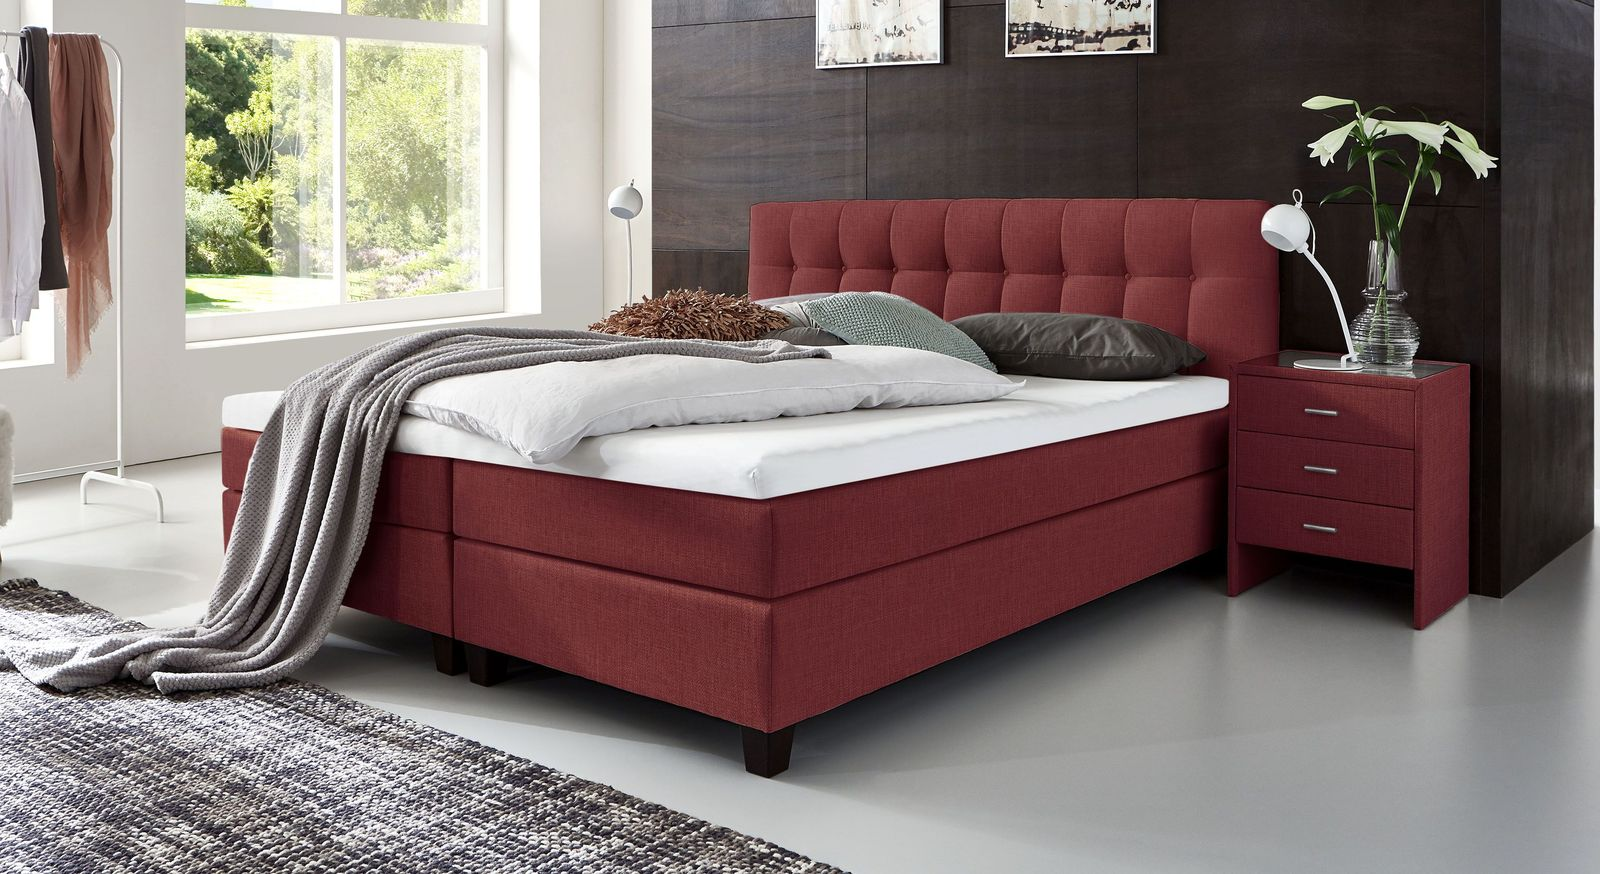 53 cm hohes Boxspringbett Luciano aus meliertem Webstoff in Rot